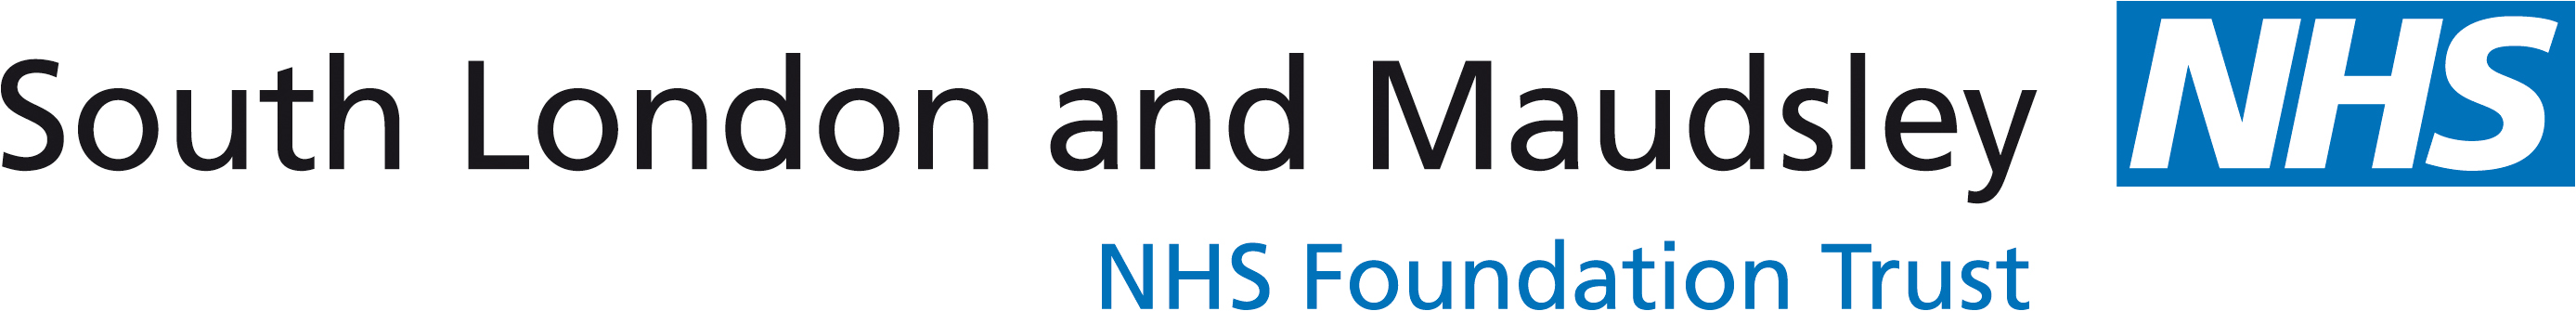 File:South London and Maudsley NHS Foundation Trust logo ...